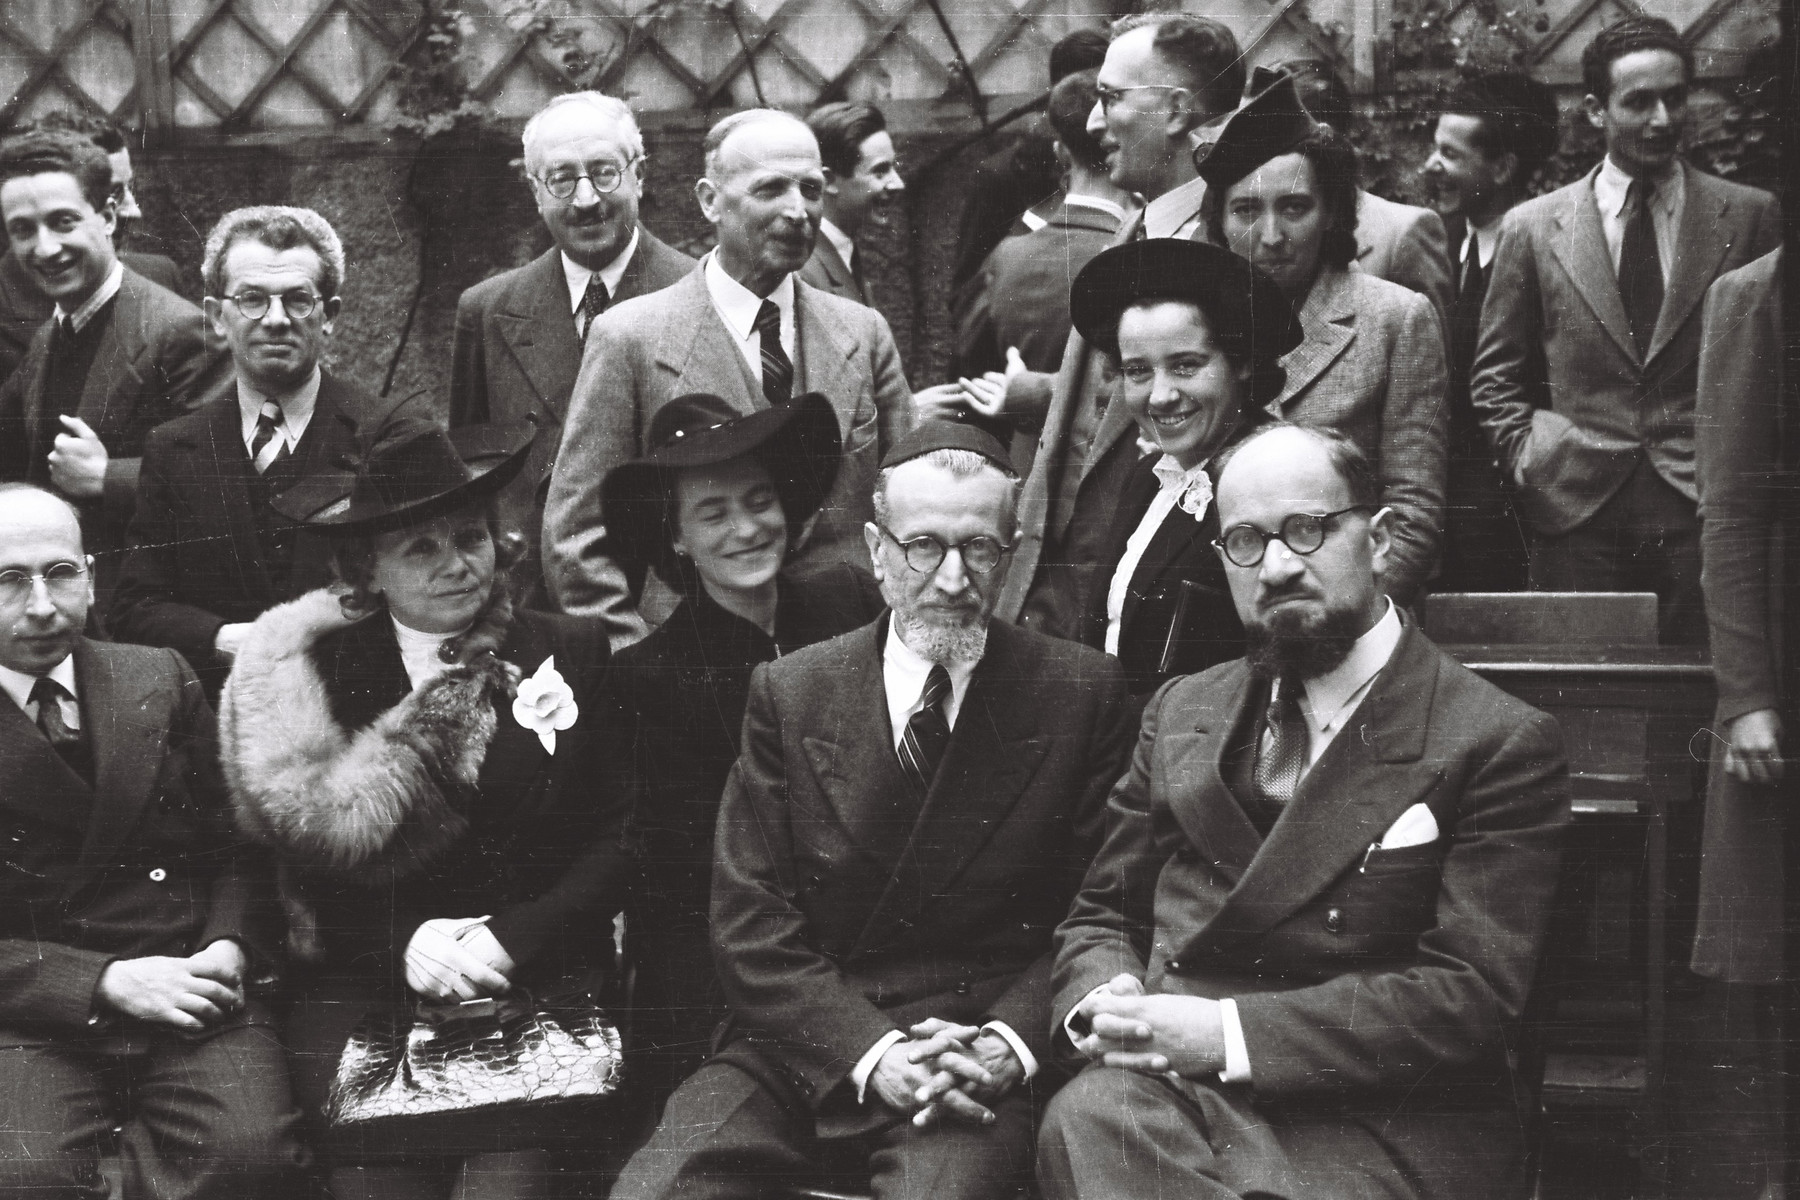 Group portrait of the faculty of the Jewish school in Milan, La Scuolo via Eupili.  Seated in the center is Rabbi Gustavo Castelbolognesi, chief-rabbi of Milan.  Alda Perugla is to his left and Prof. Columbo is seated to his right.  Hulda Cassuto (math teacher) is behind them and in-between Rabbi Castelbolognesi and Prof. Columbo.  Dr. Norsa, professor of philosophy is seated on the left and behind him is Professor Tedeschi.  Prof. Dreyfus is seated second from the left.